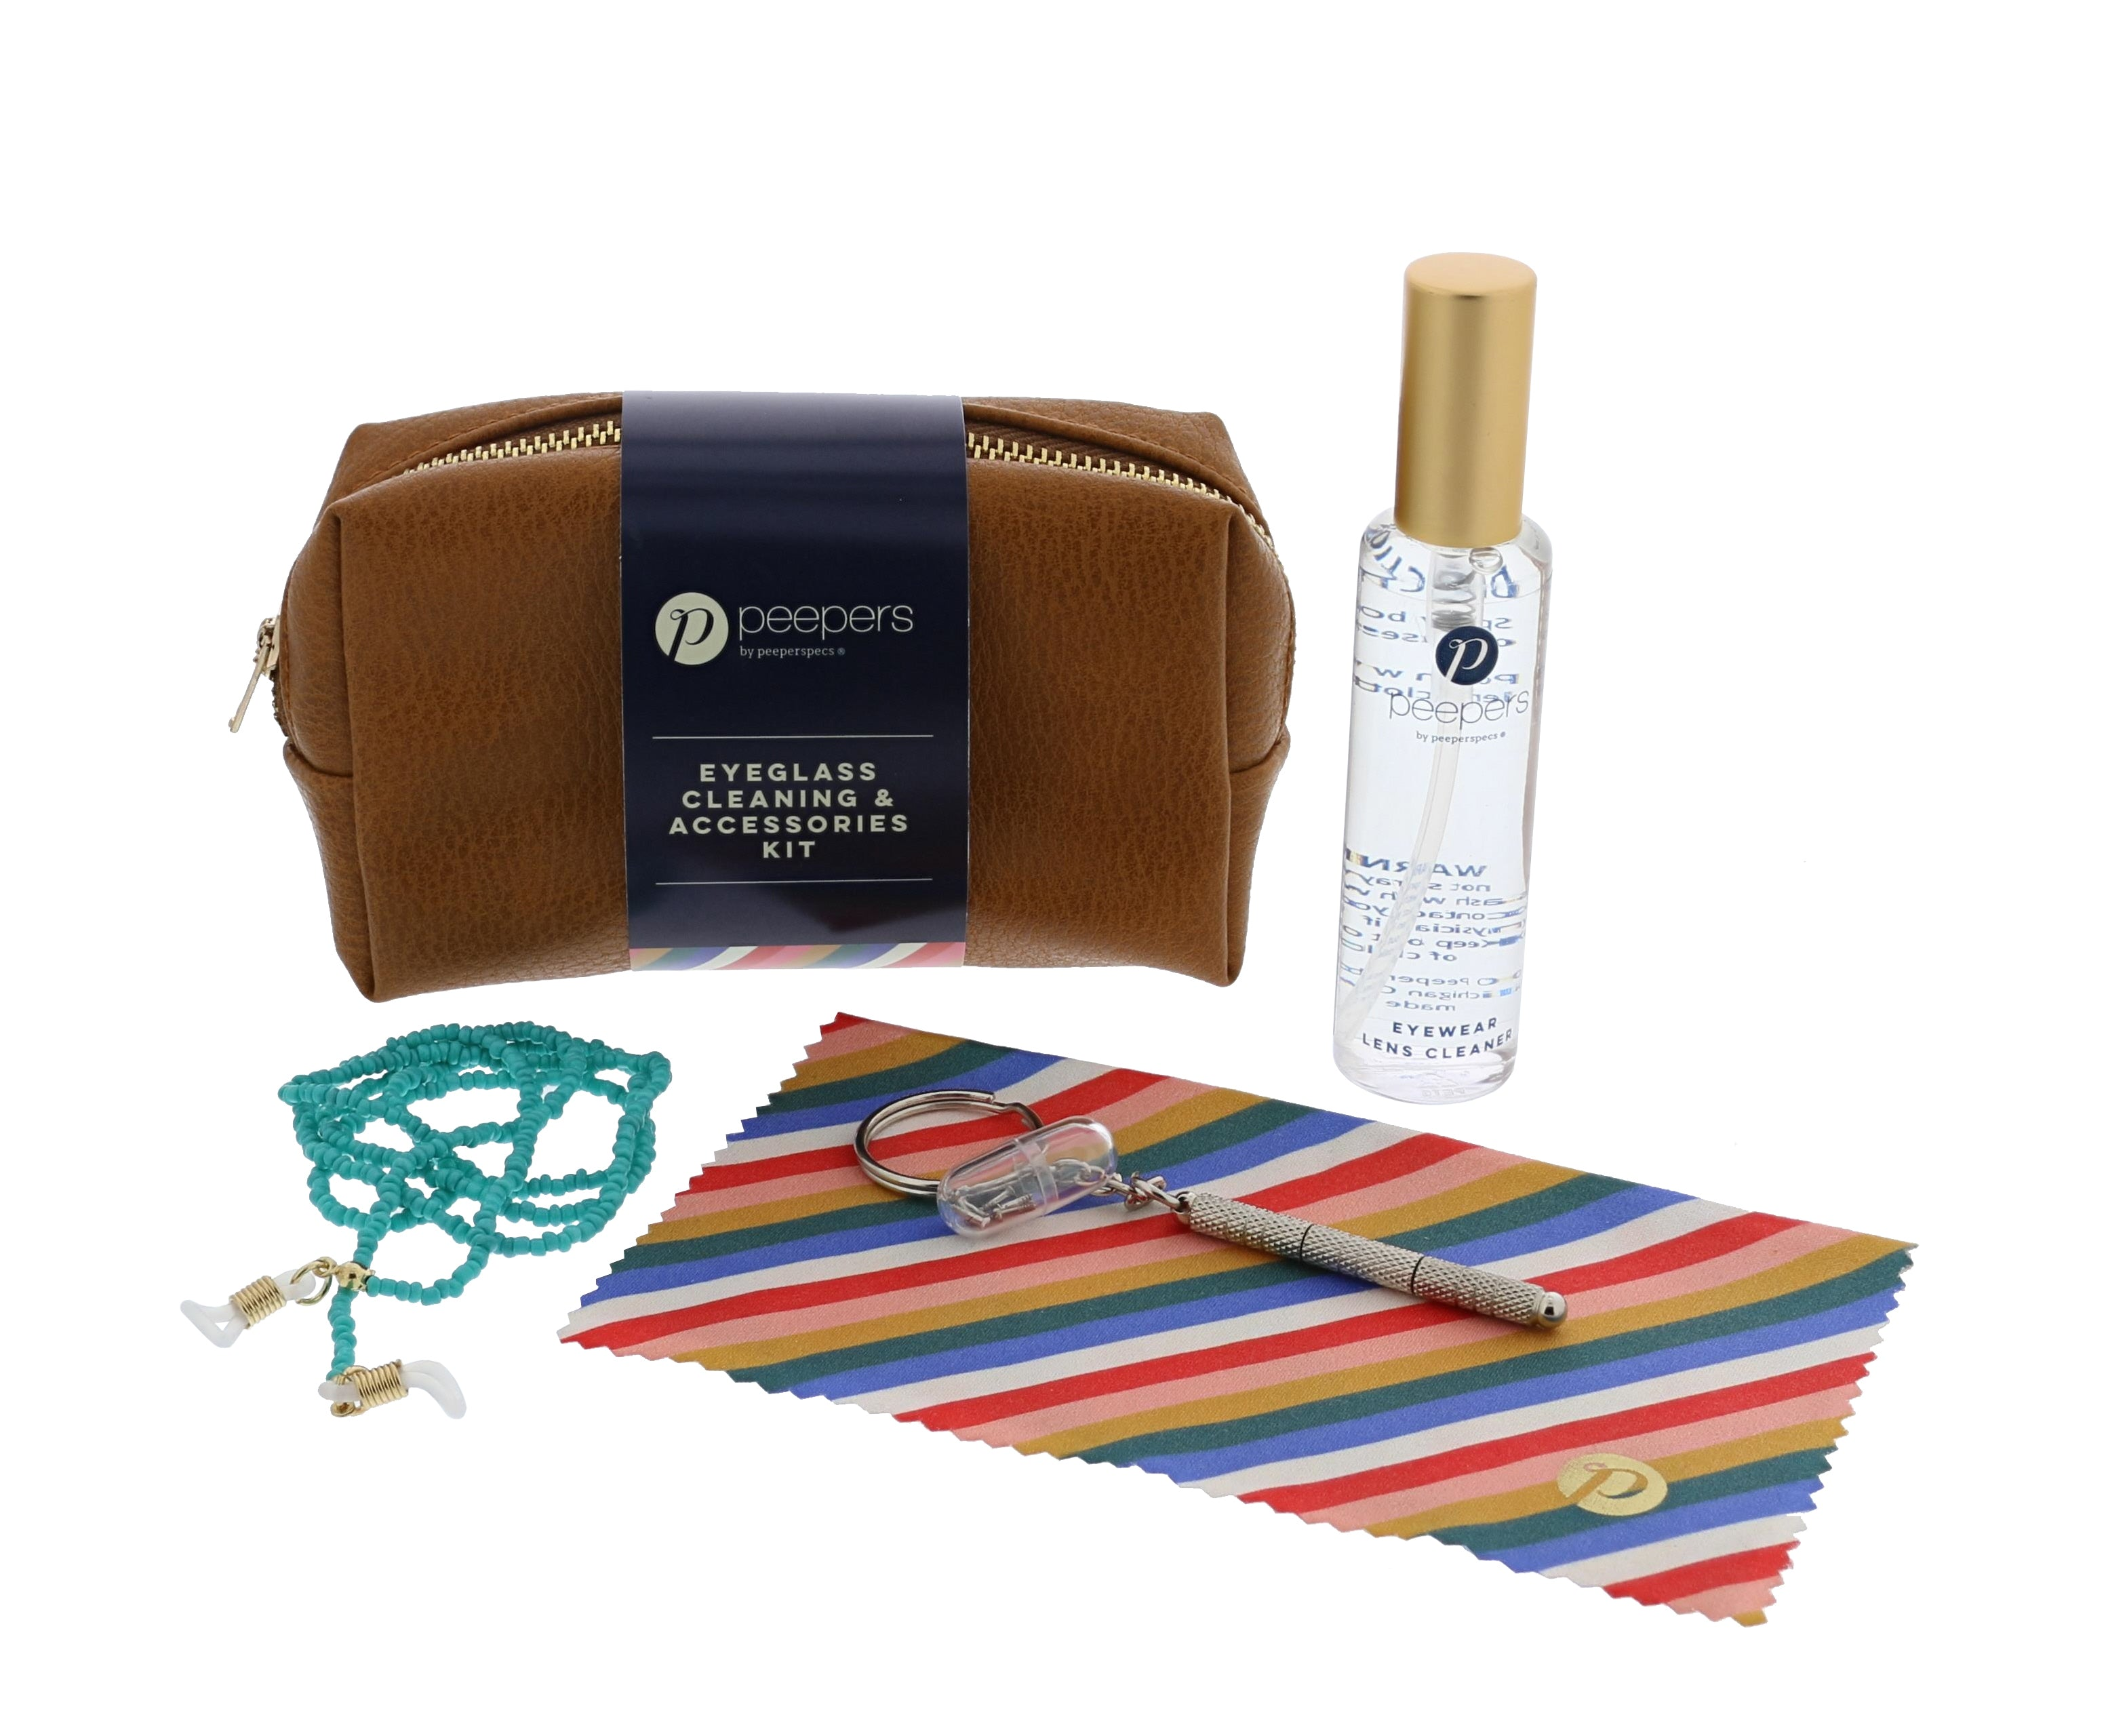 Peepers accessory cleaning and care kit for glasses